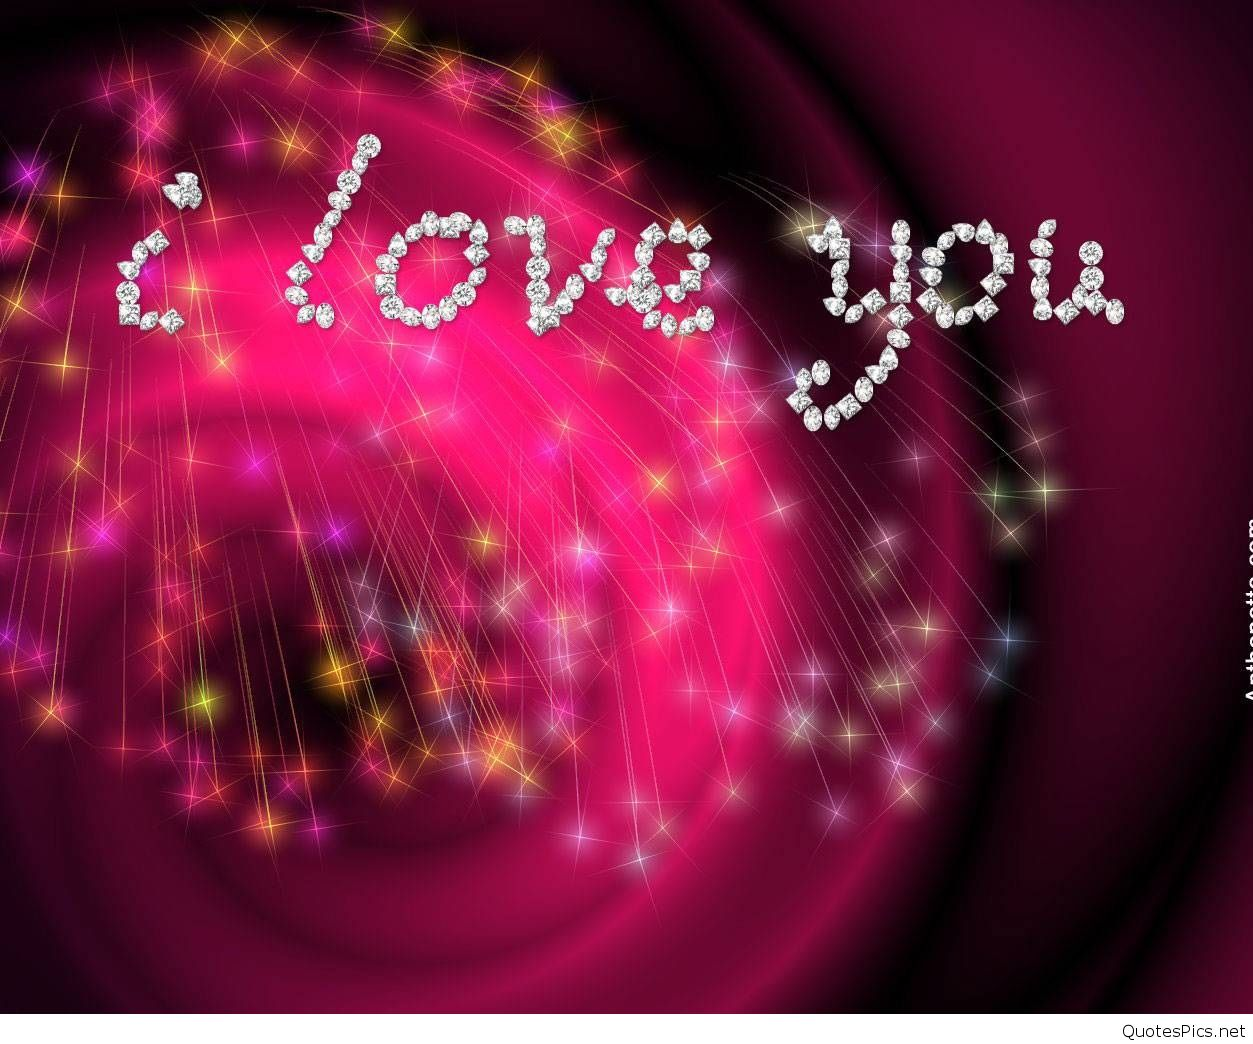 Love Wallpapers For Facebook Facebook Images For Love 360028